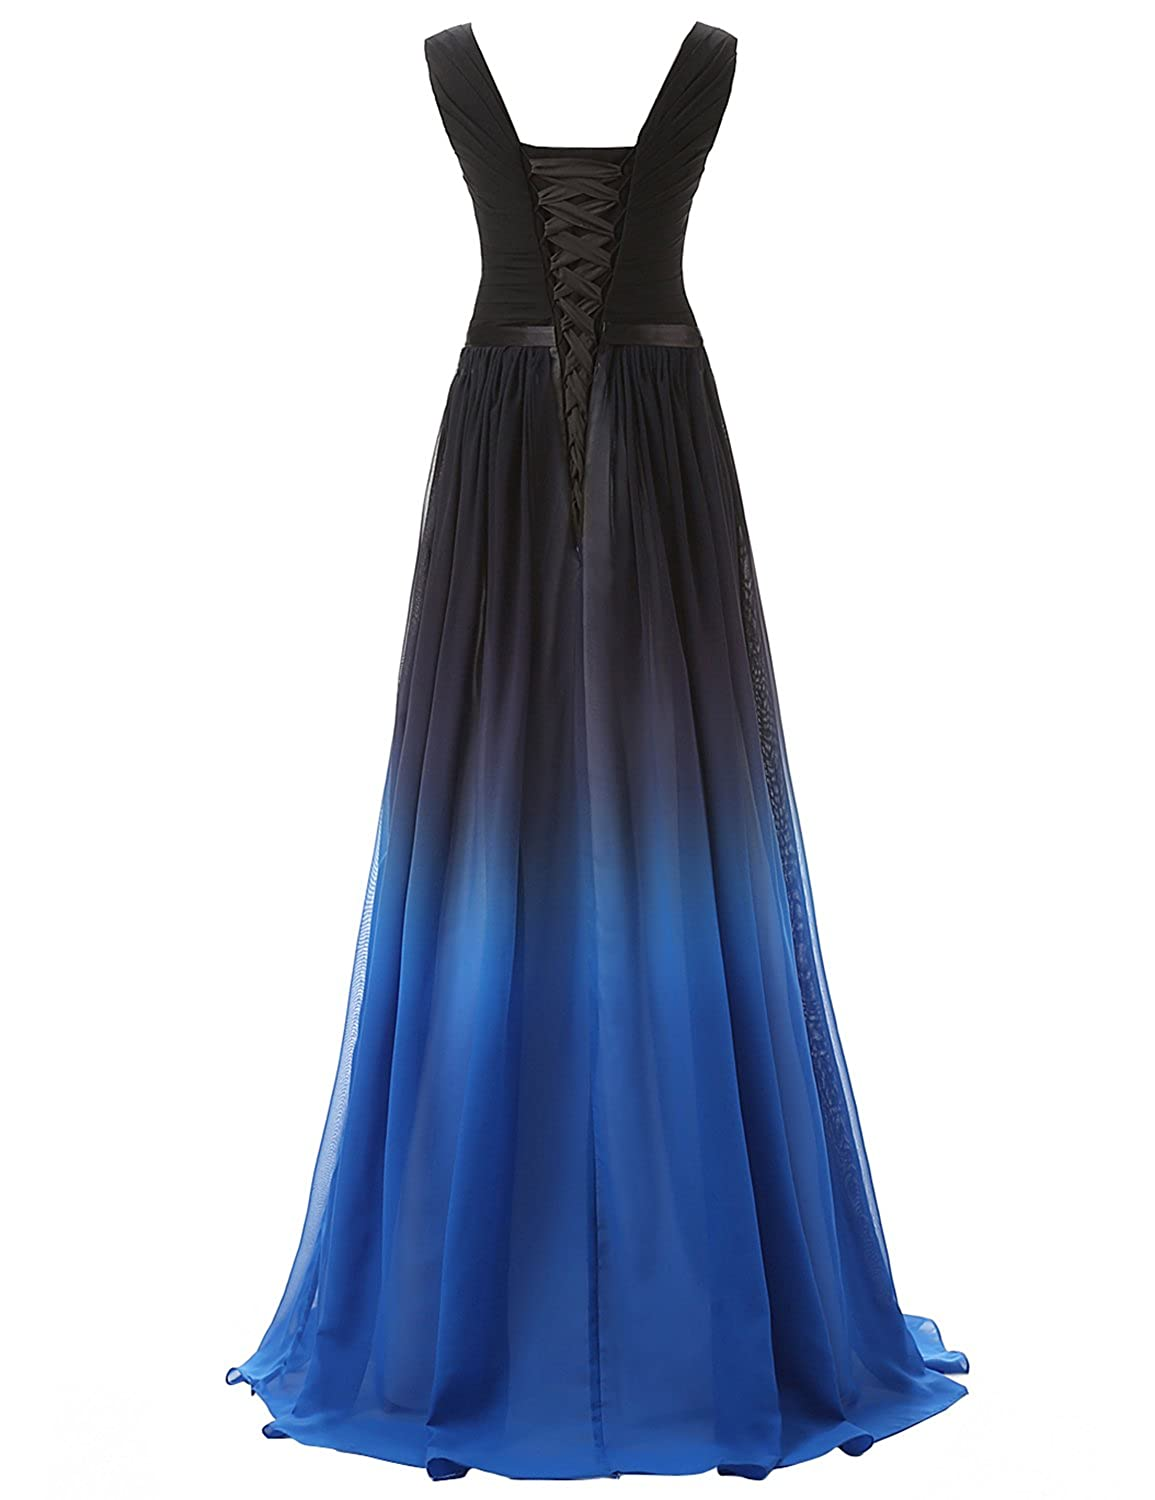 acc9c65f Amazon.com: Belle House Women's Gradient Color Chiffon Formal Evening Dress  Long Prom Gown: Clothing